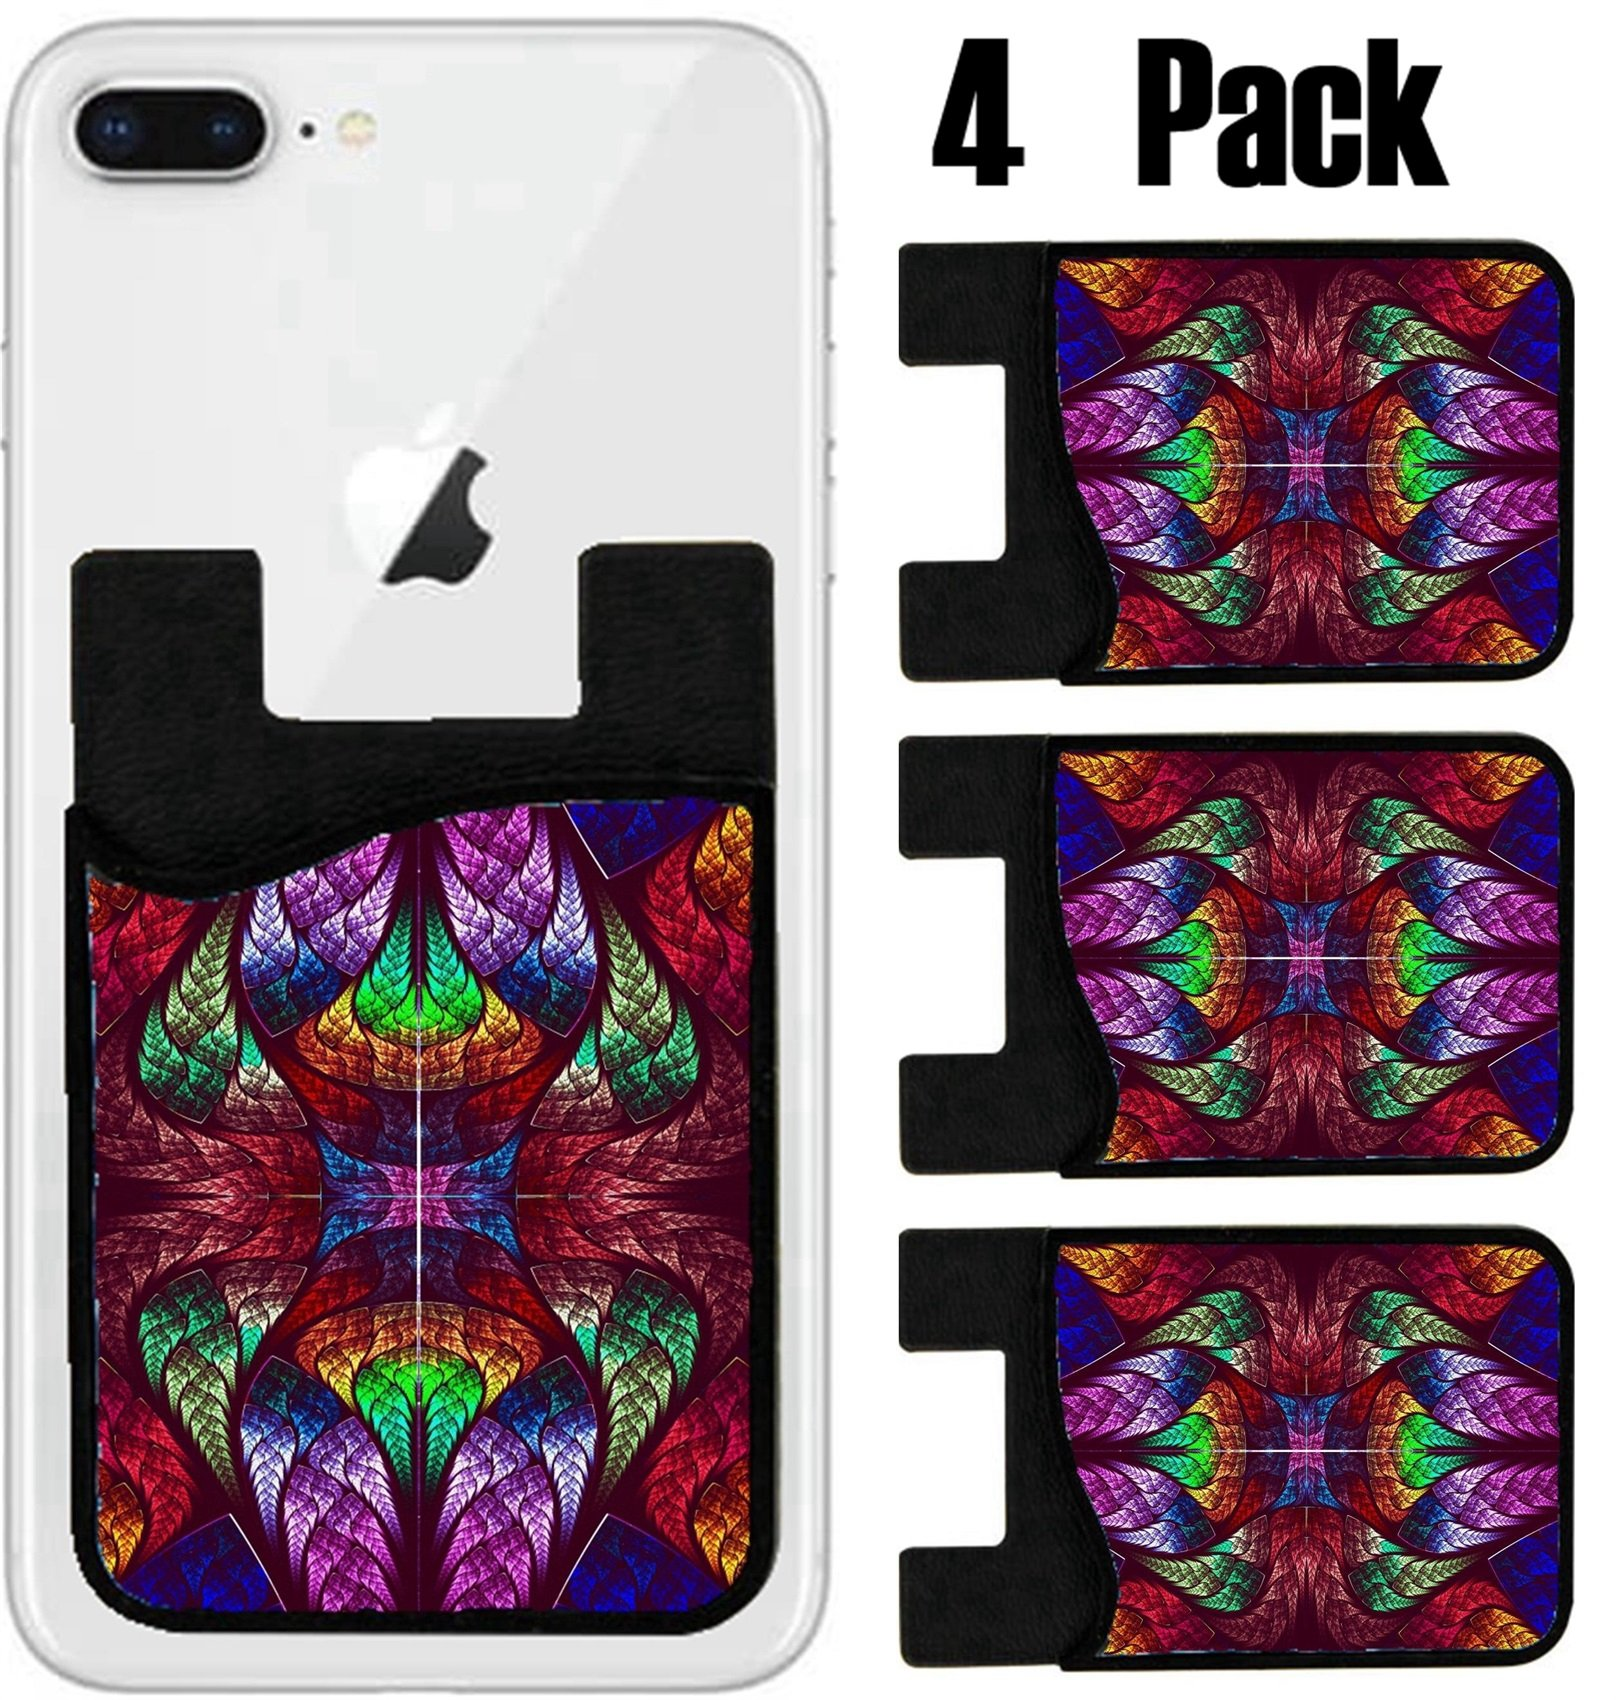 MSD Phone Card holder, sleeve/wallet for iPhone Samsung Android and all smartphones with removable microfiber screen cleaner Silicone card Caddy(4 Pack) Multicolor beautiful fractal pattern Computer g